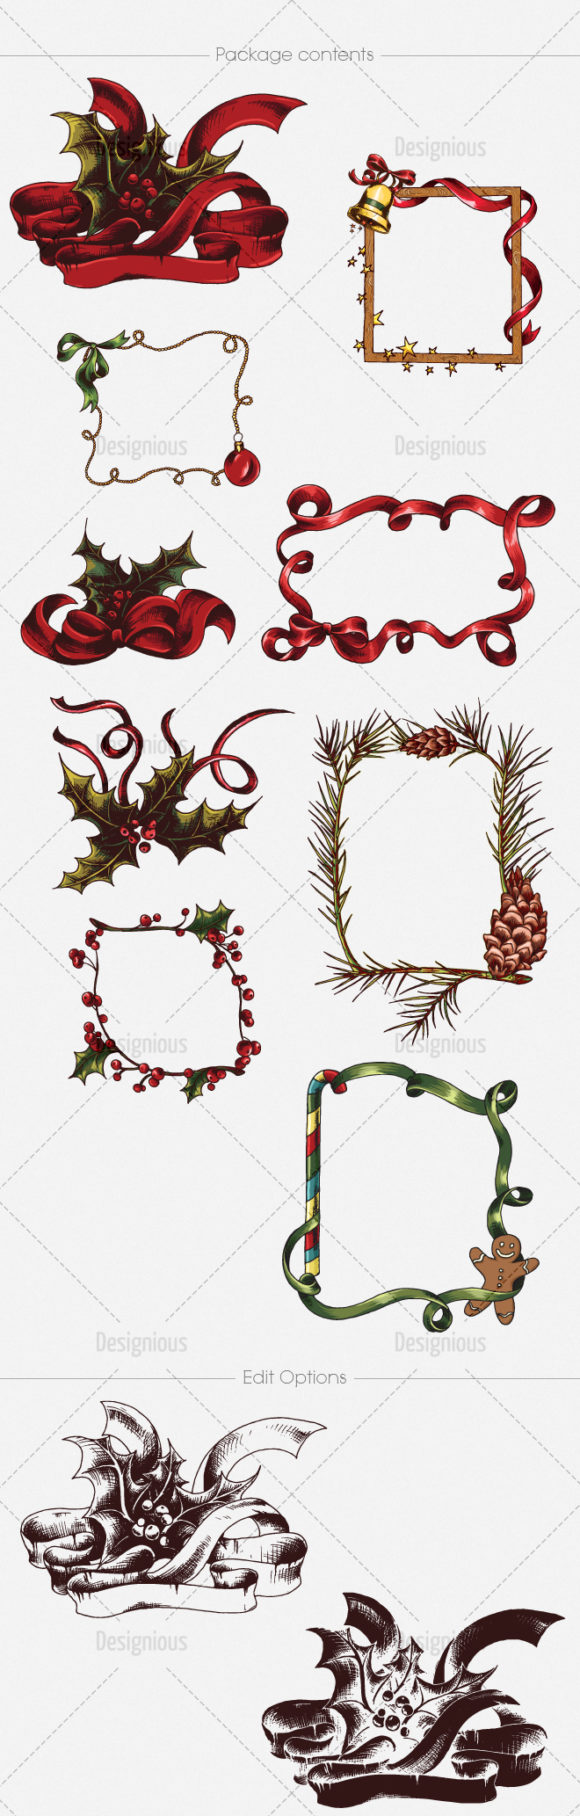 Christmas Vector Pack 21 products designious vector christmas 21 large